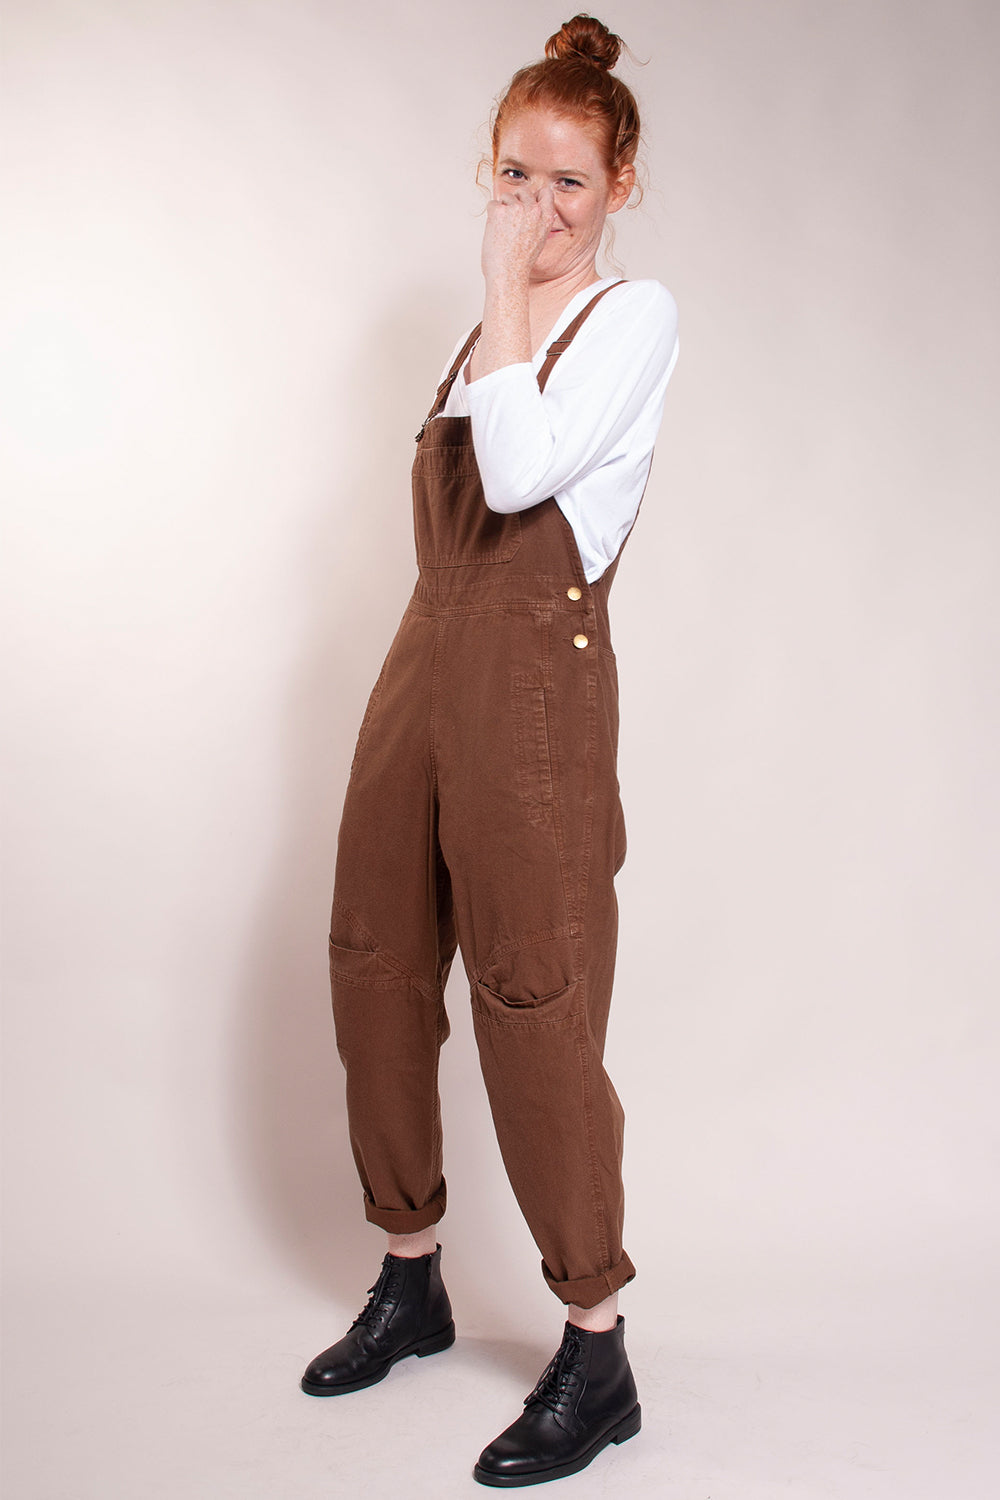 Classic overalls with lots of pocket details. Flattering fit. 100% cotton.